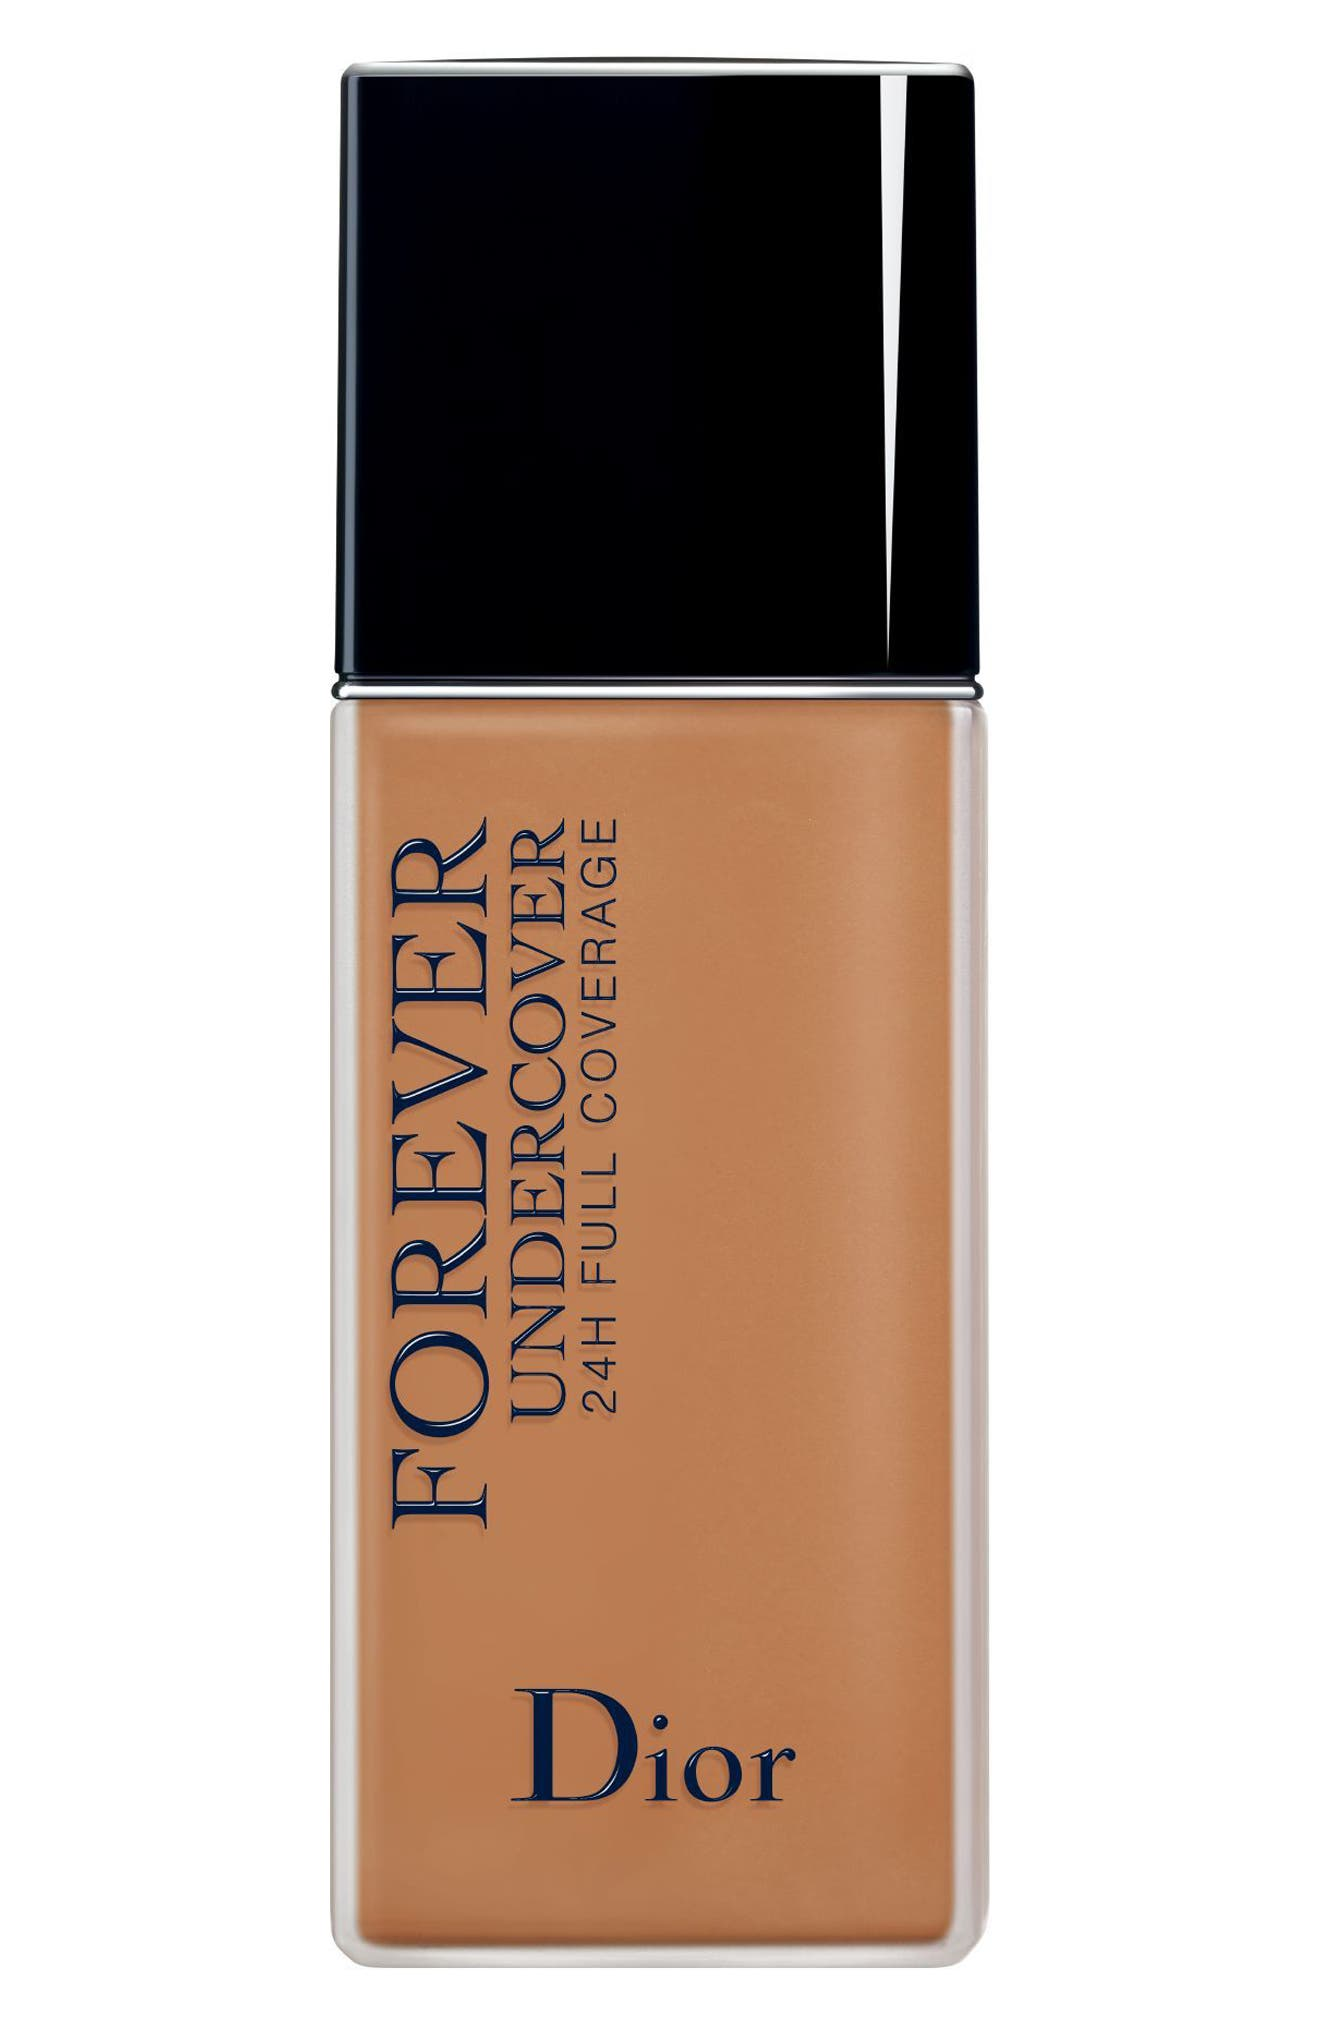 Dior Diorskin Forever Undercover 24-Hour Full Coverage Water-Based Foundation - 051 Praline